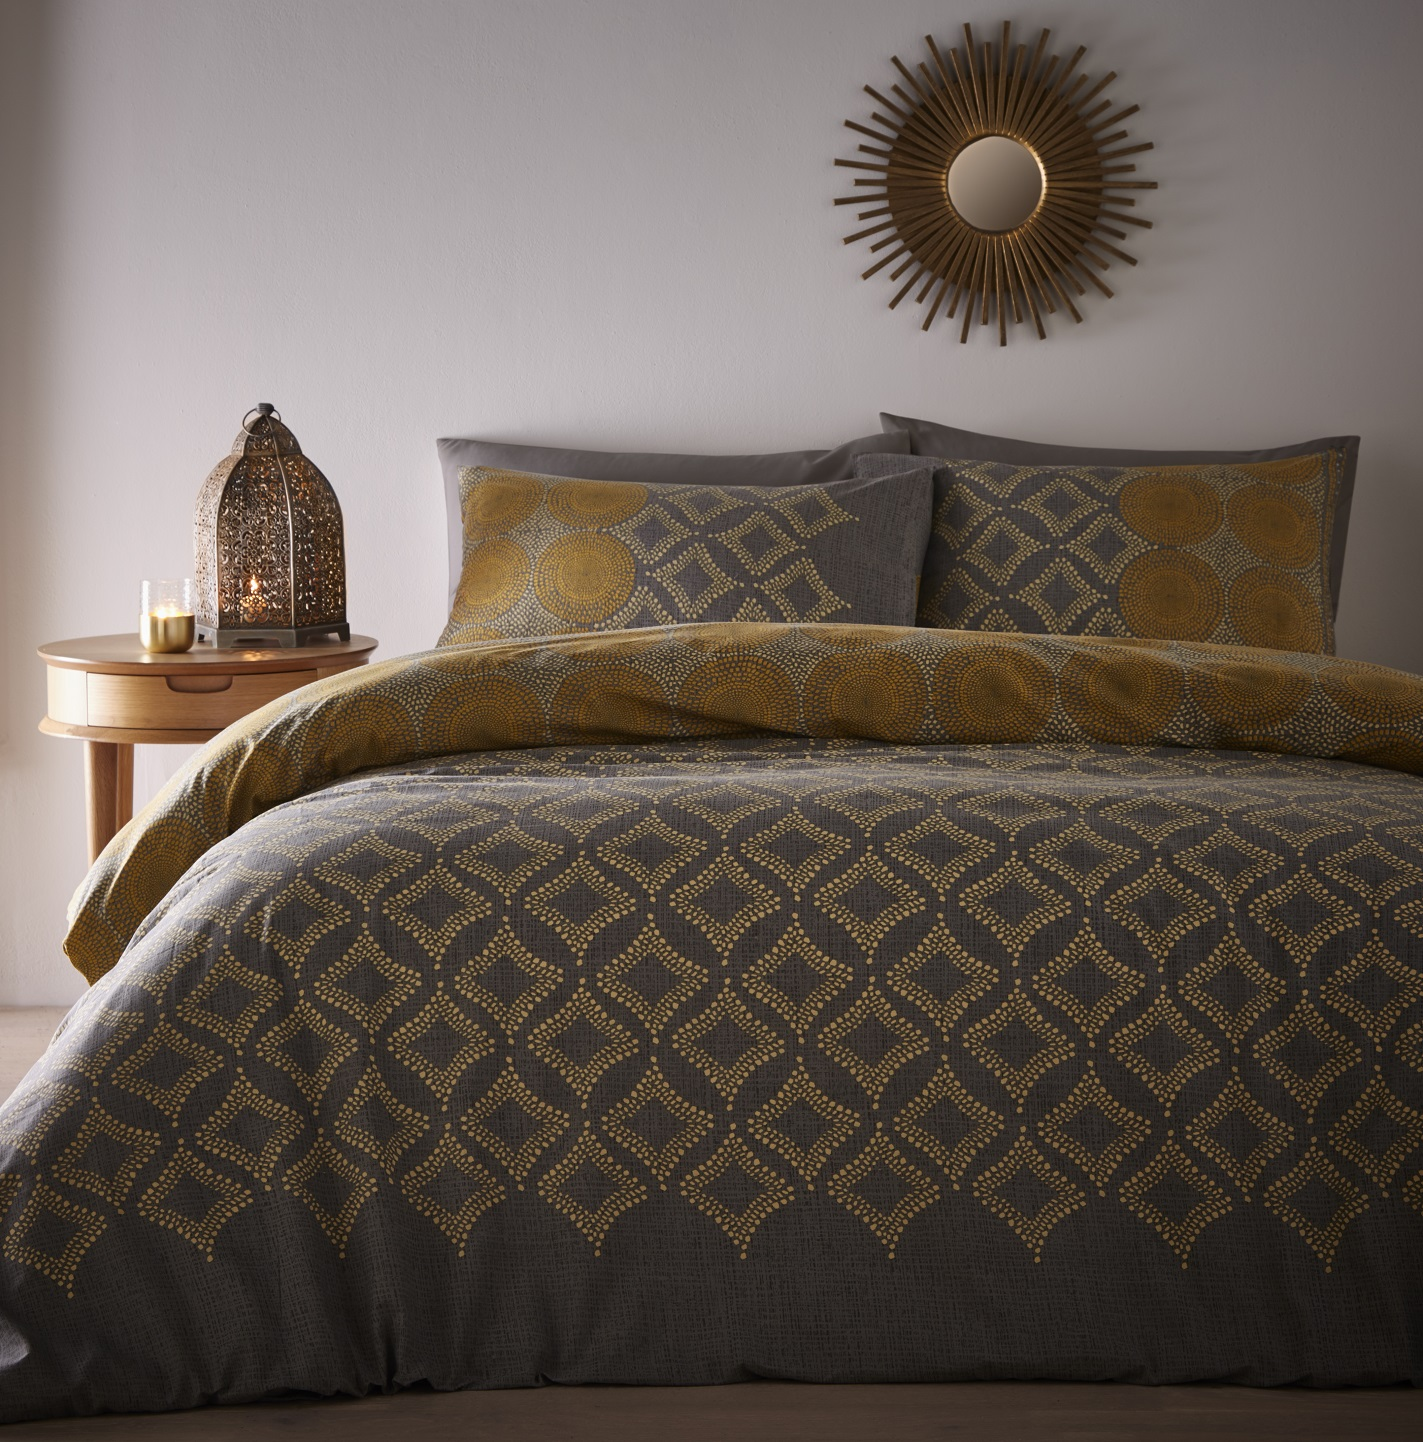 Details about Moroccan Ethnic Double Bed Duvet Cover Quilt Bedding Set Joel  Grey Ochre Yellow